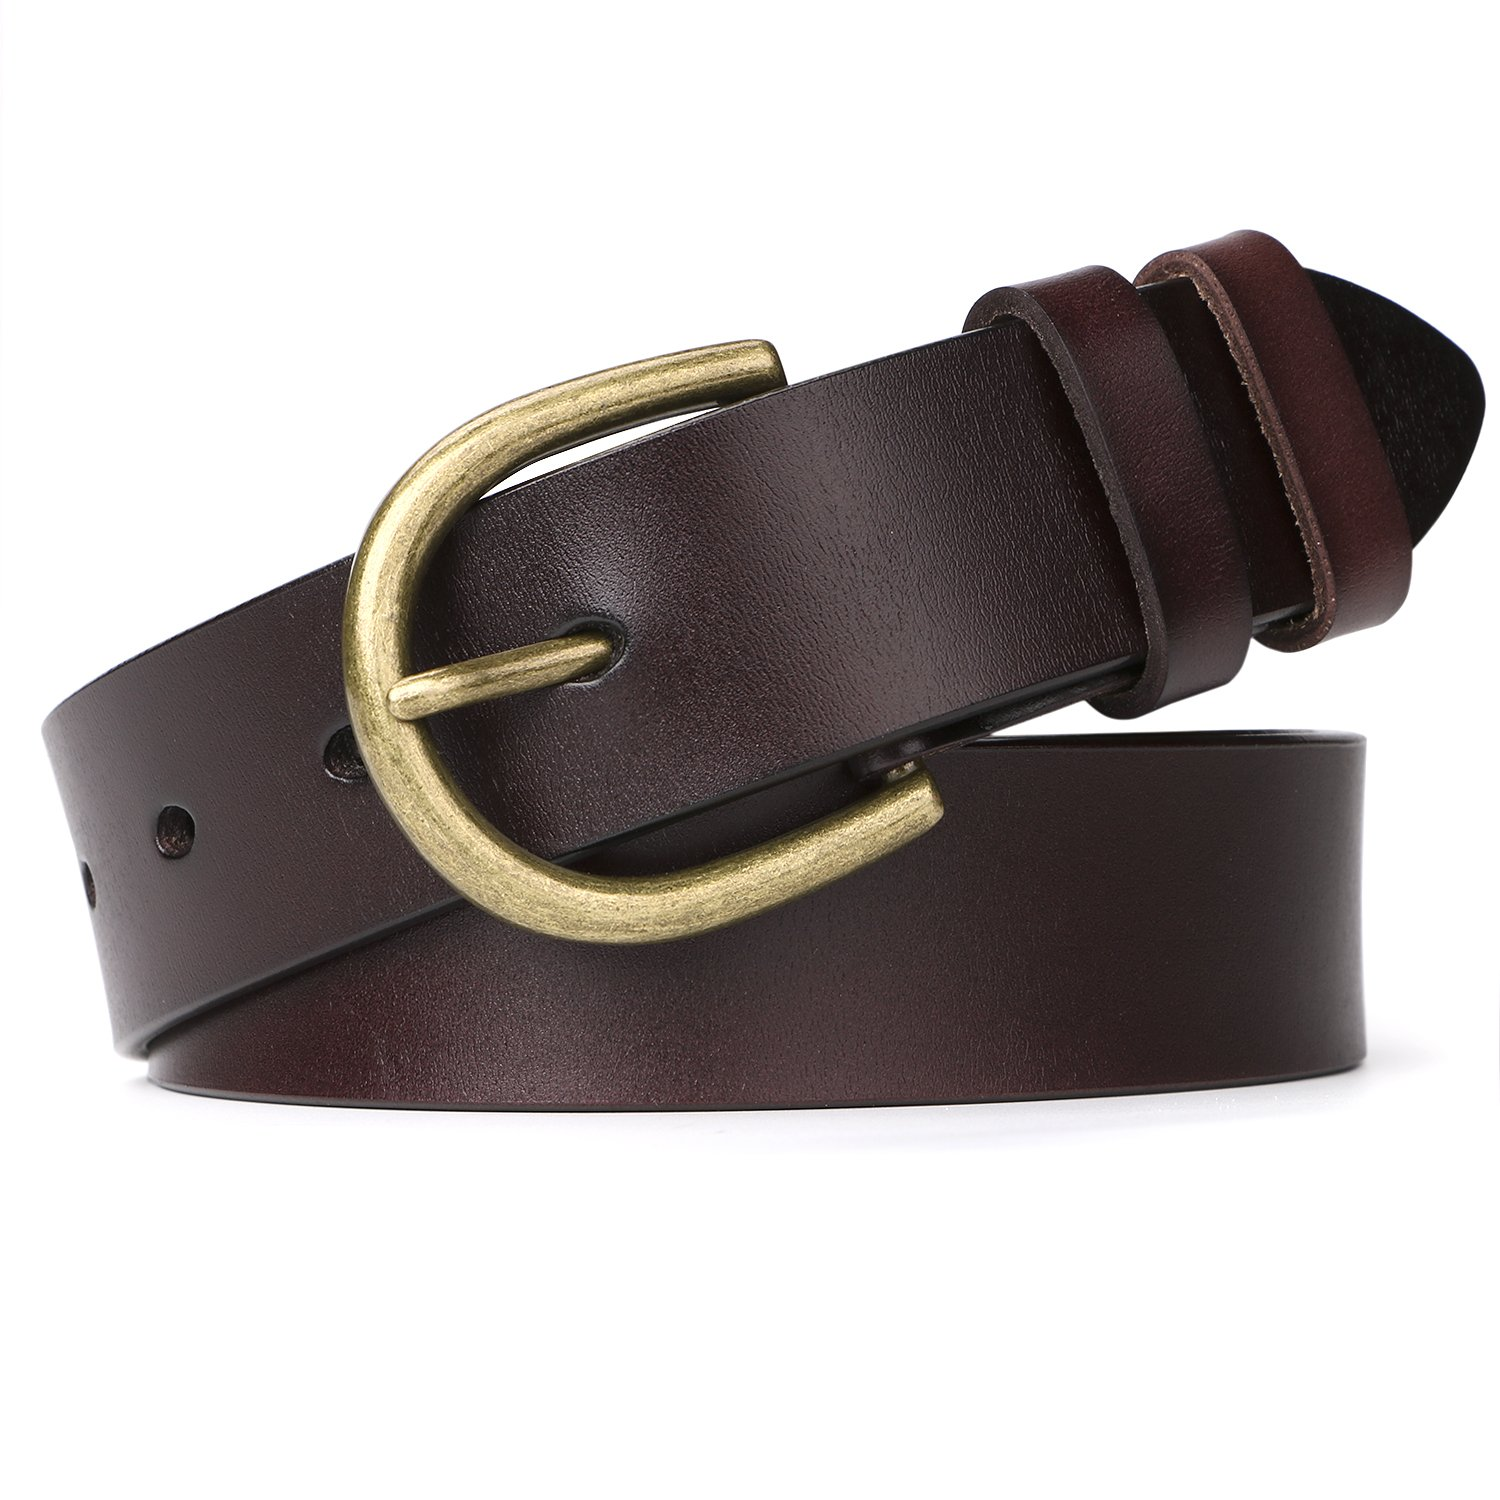 JASGOOD Genuine Leather Belt for Women Waist Belt with Brushed Alloy Buckle JA061